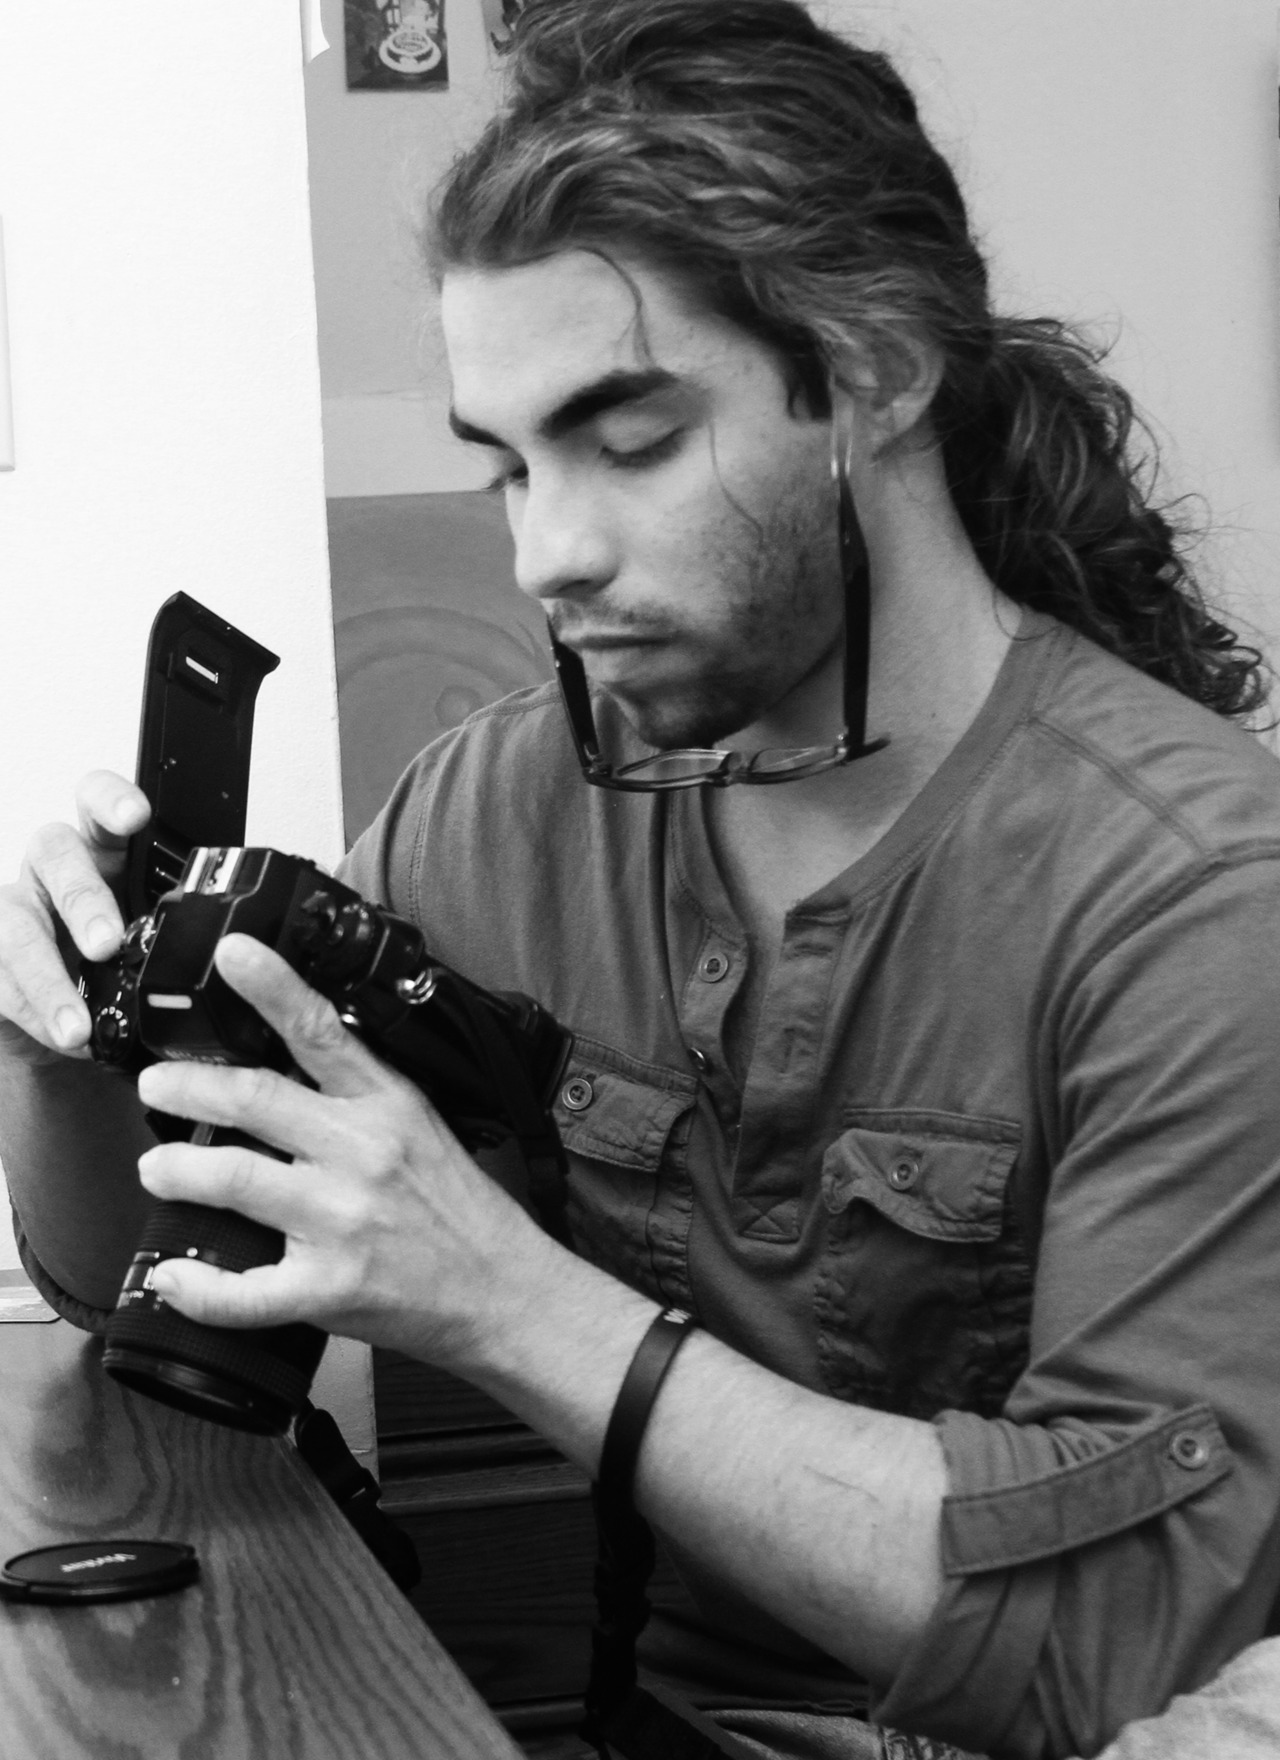 My Old Photography Classmate! He's gonna be a big photographer one day. YANNI DEMELO   Remember the NAME!